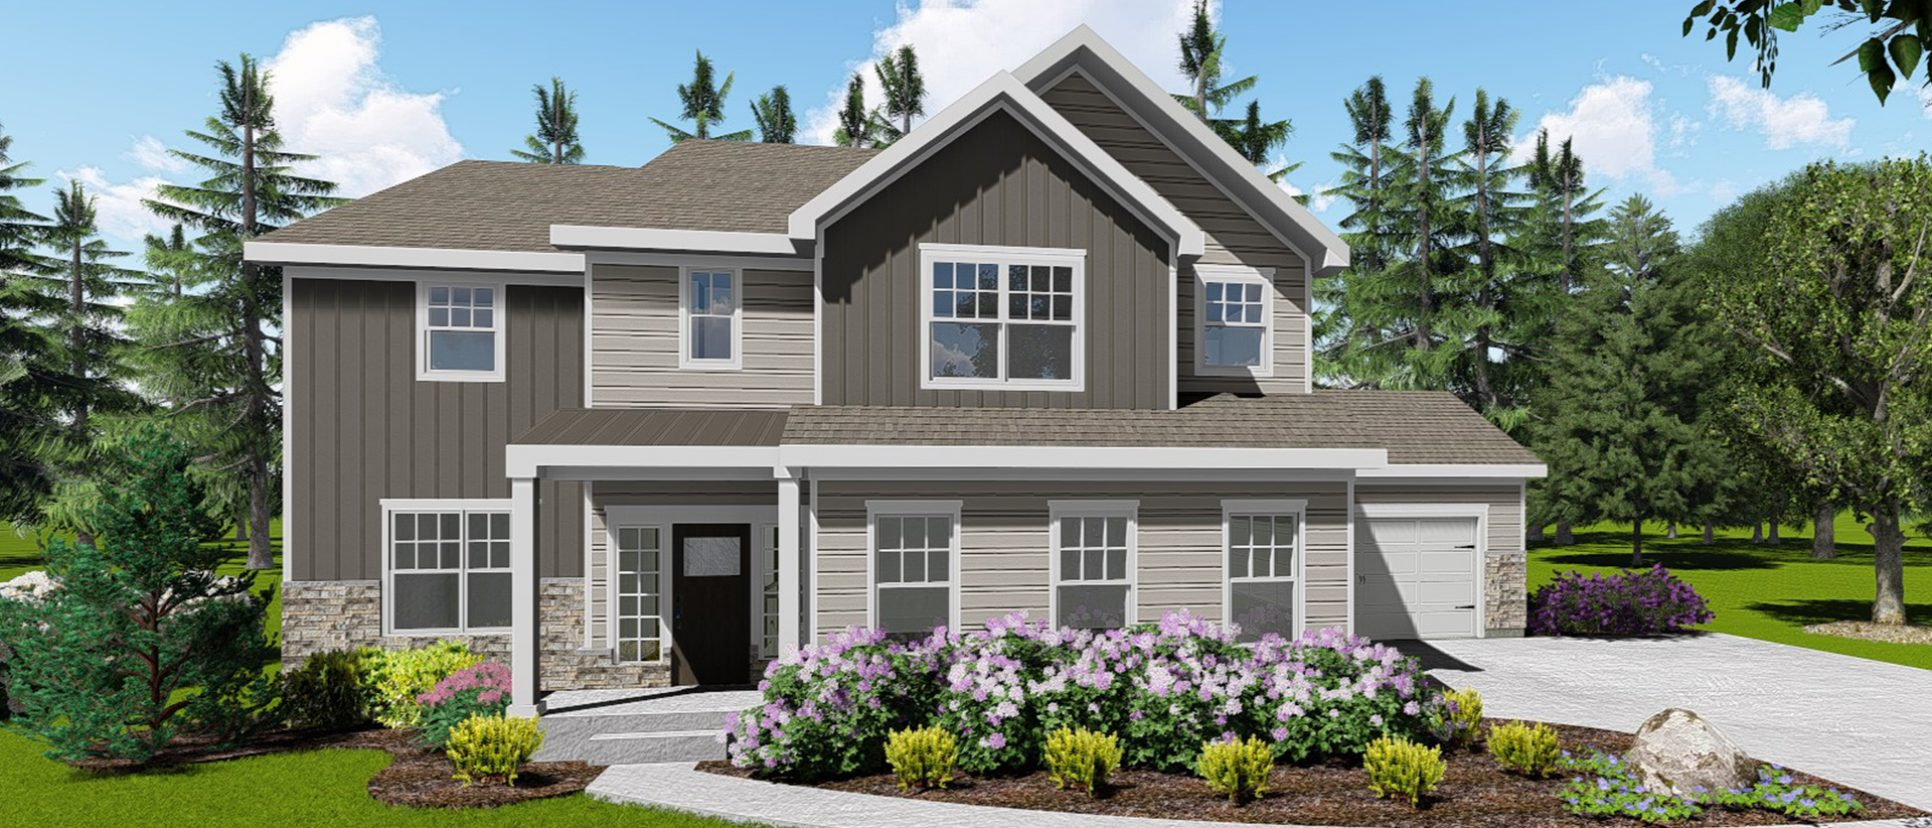 Custom exterior rendering of lot 168 Cypress Ridge, The Amber. Built by Design Homes and Development.